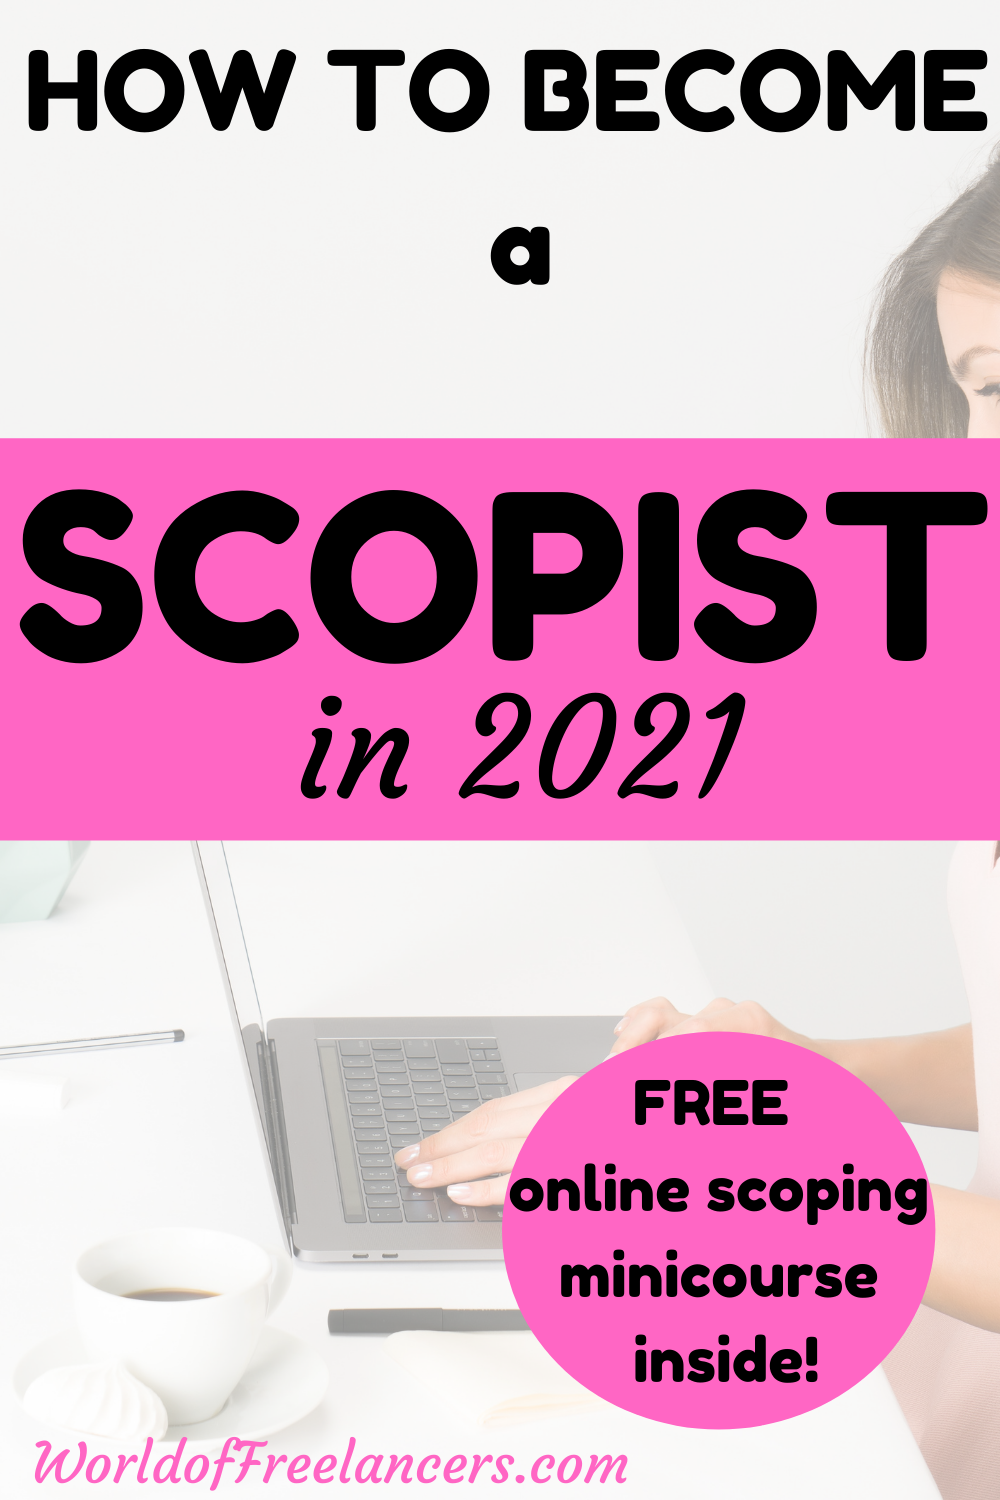 How to become a scopist in 2021 - free online scoping minicourse inside